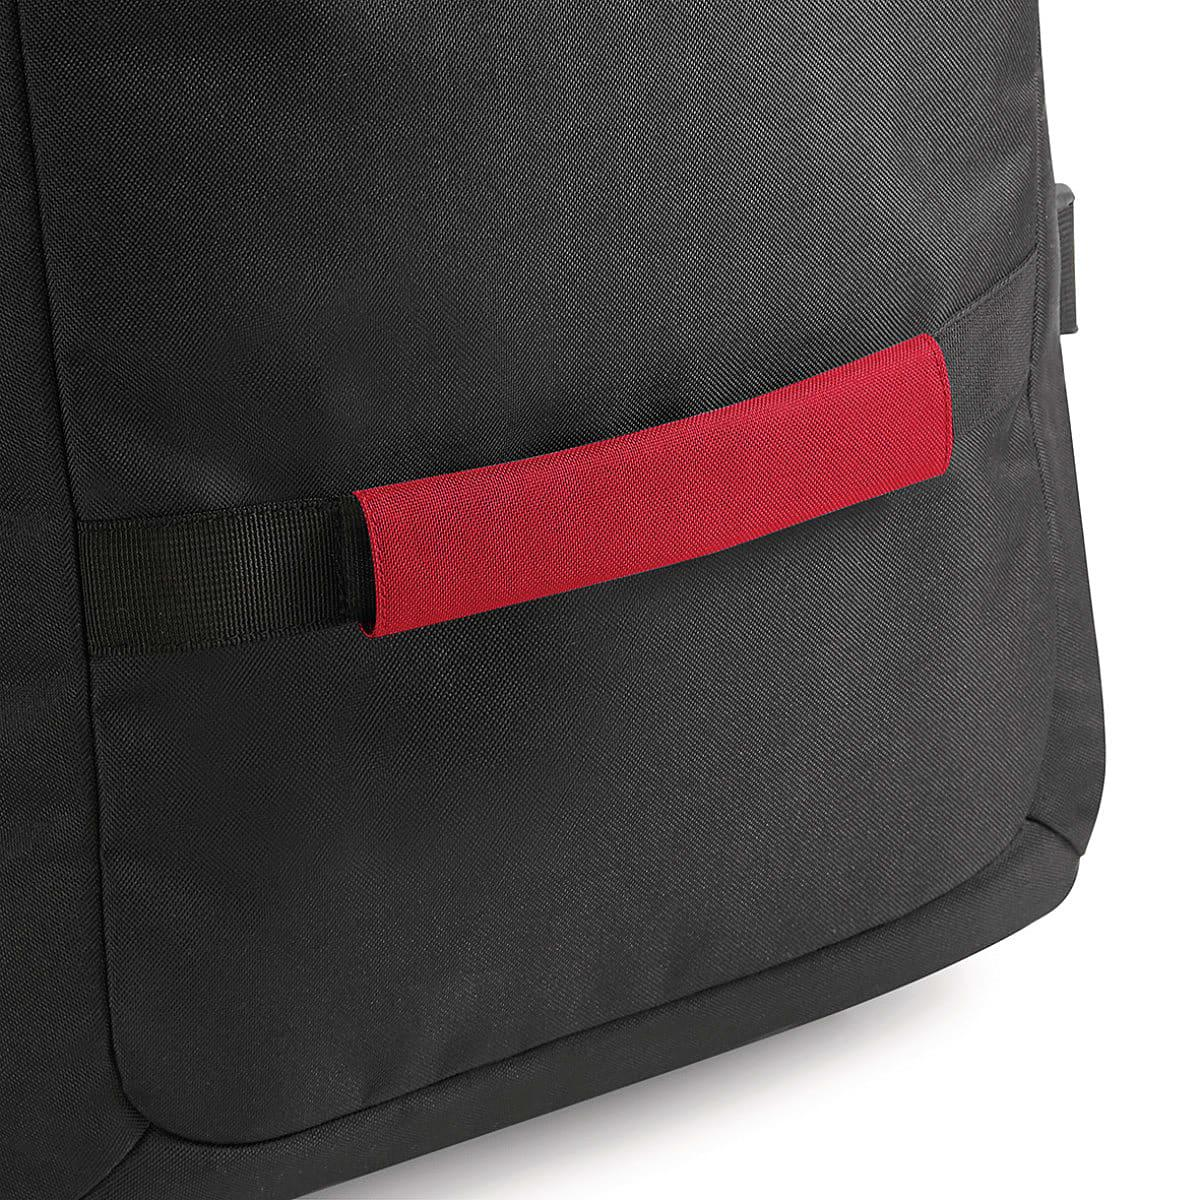 Bagbase Escape Handle Wrap in Classic Red (Product Code: BG485)